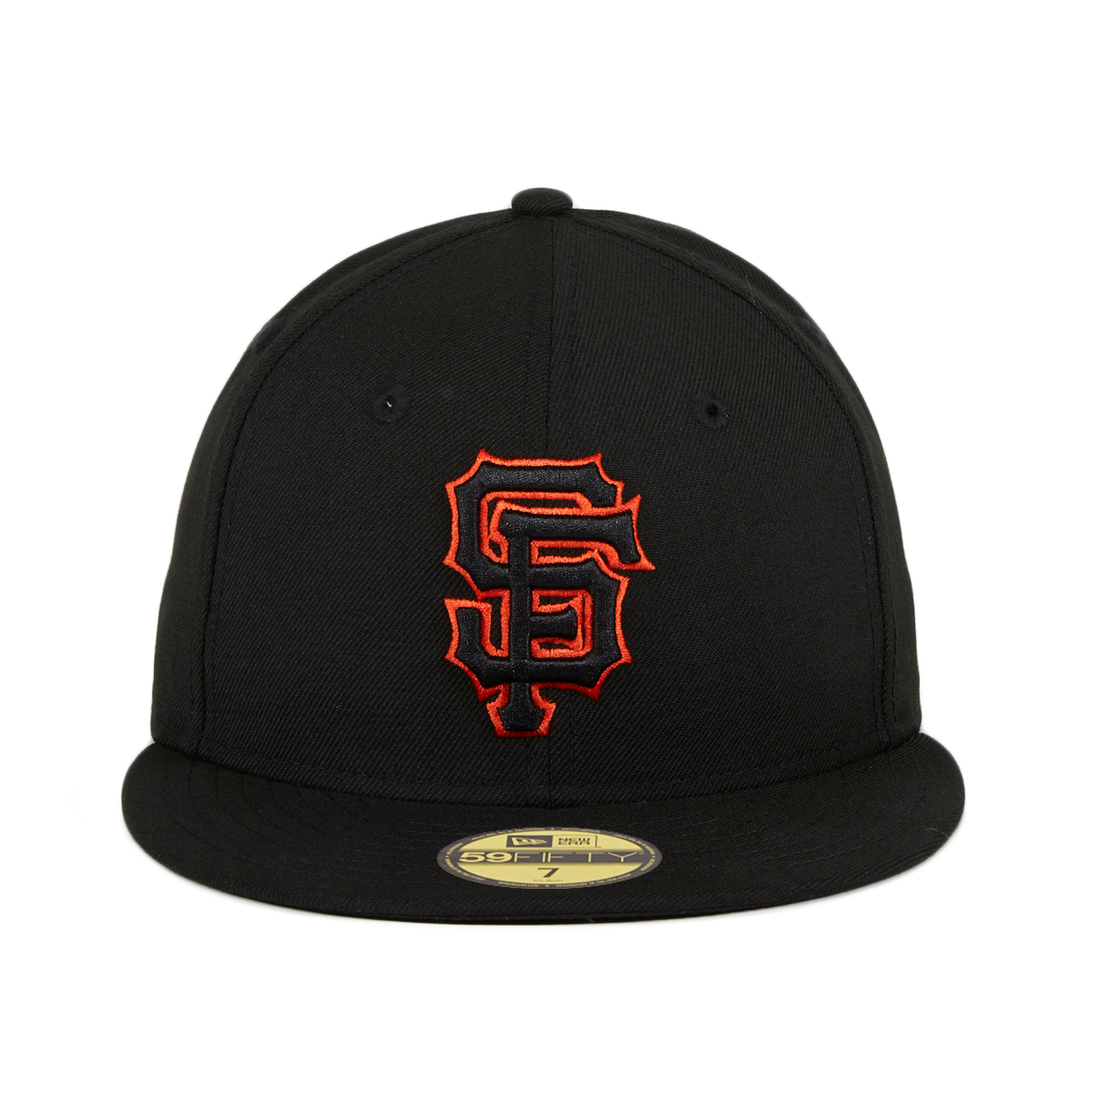 Exclusive New Era 59Fifty San Francisco Giants Hat - Black, Black, Orange